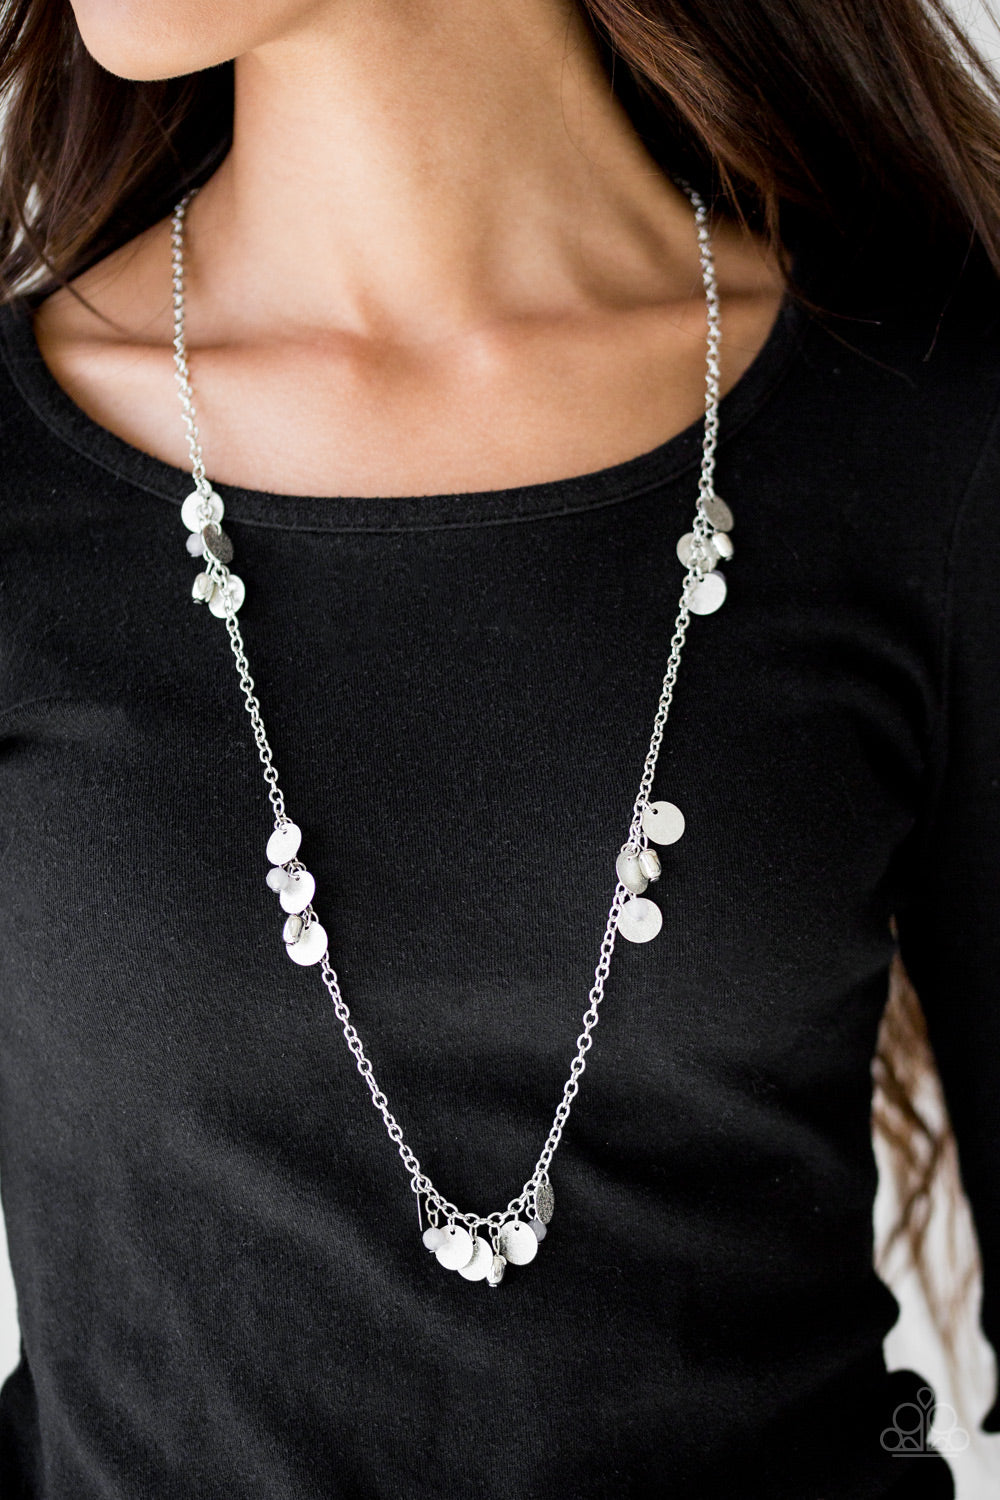 Delicately hammered in blinding shimmer, glittery silver discs join gray crystal-like beading along a shiny silver chain for a whimsical look. Features an adjustable clasp closure.  Sold as one individual necklace. Includes one pair of matching earrings.  Always nickel and lead free.